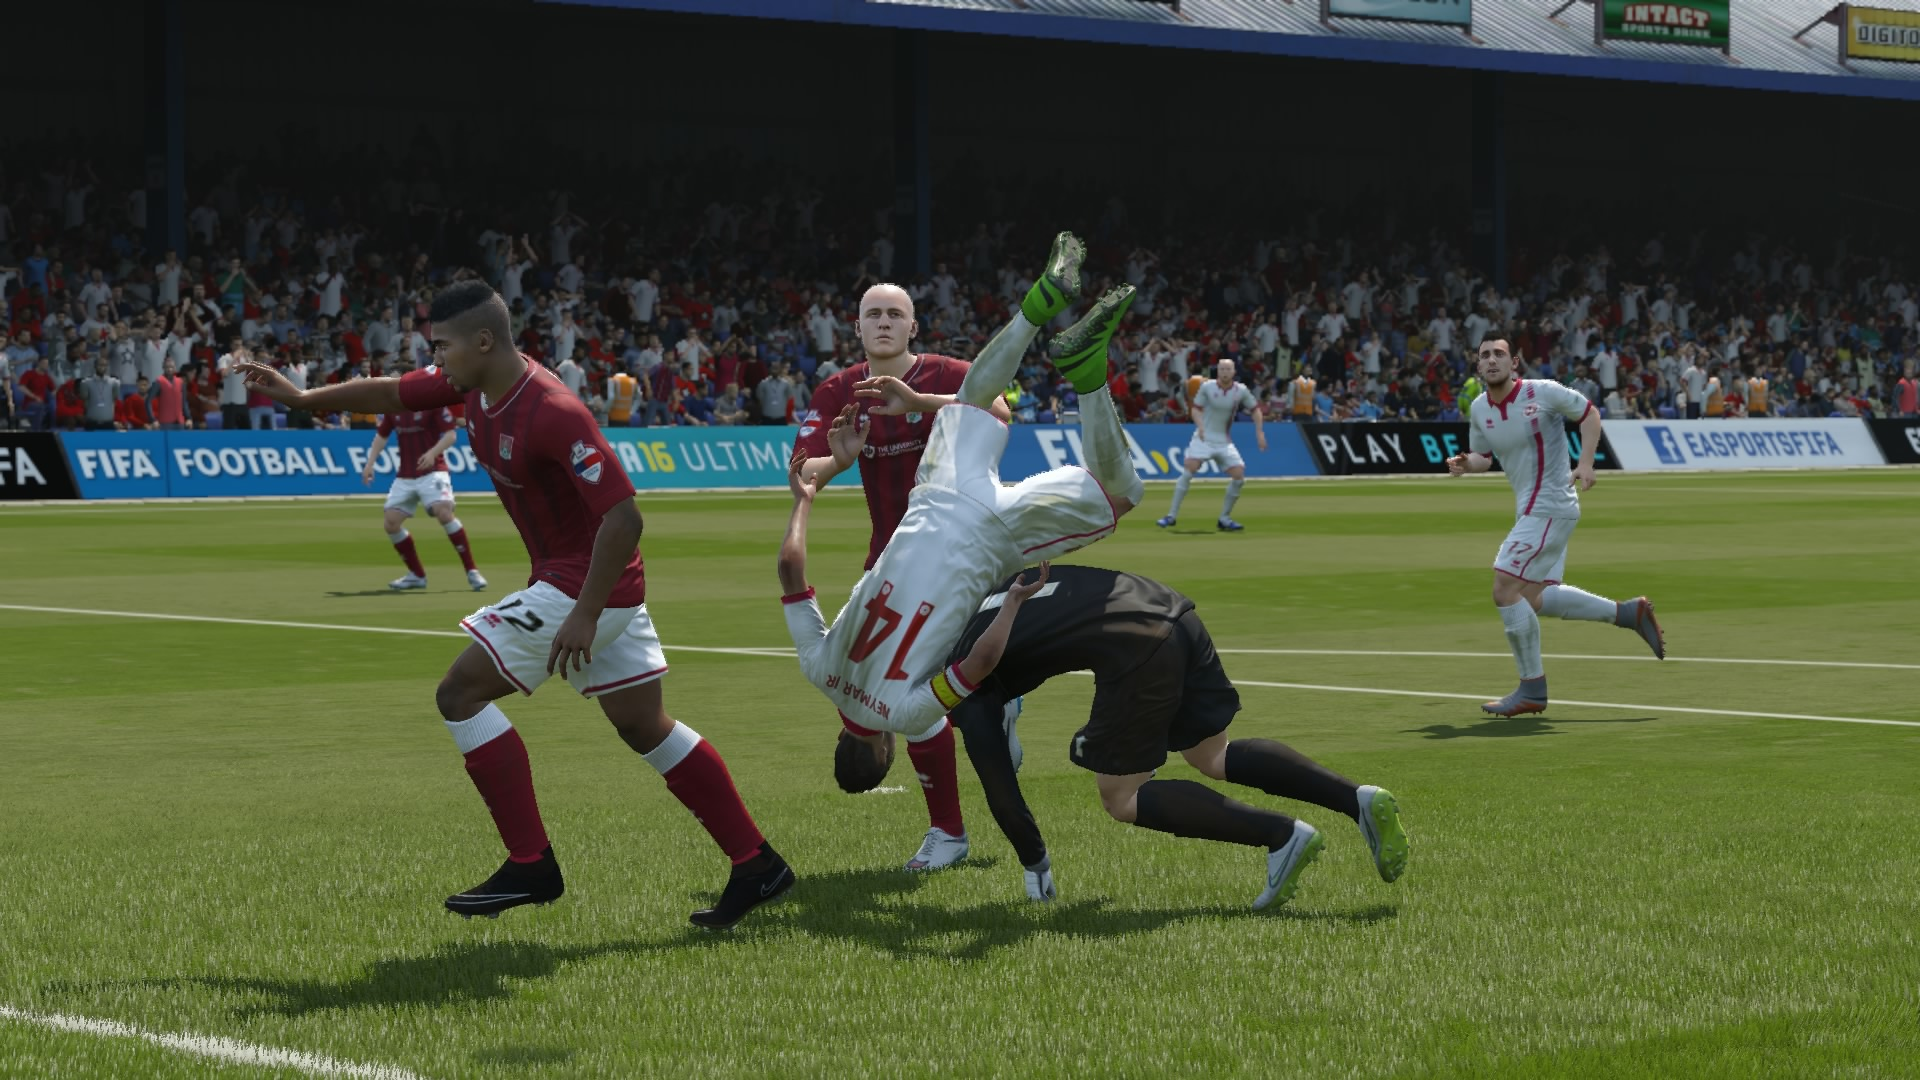 FIFA-17-10-Ways-to-Improve-the-Game.jpg